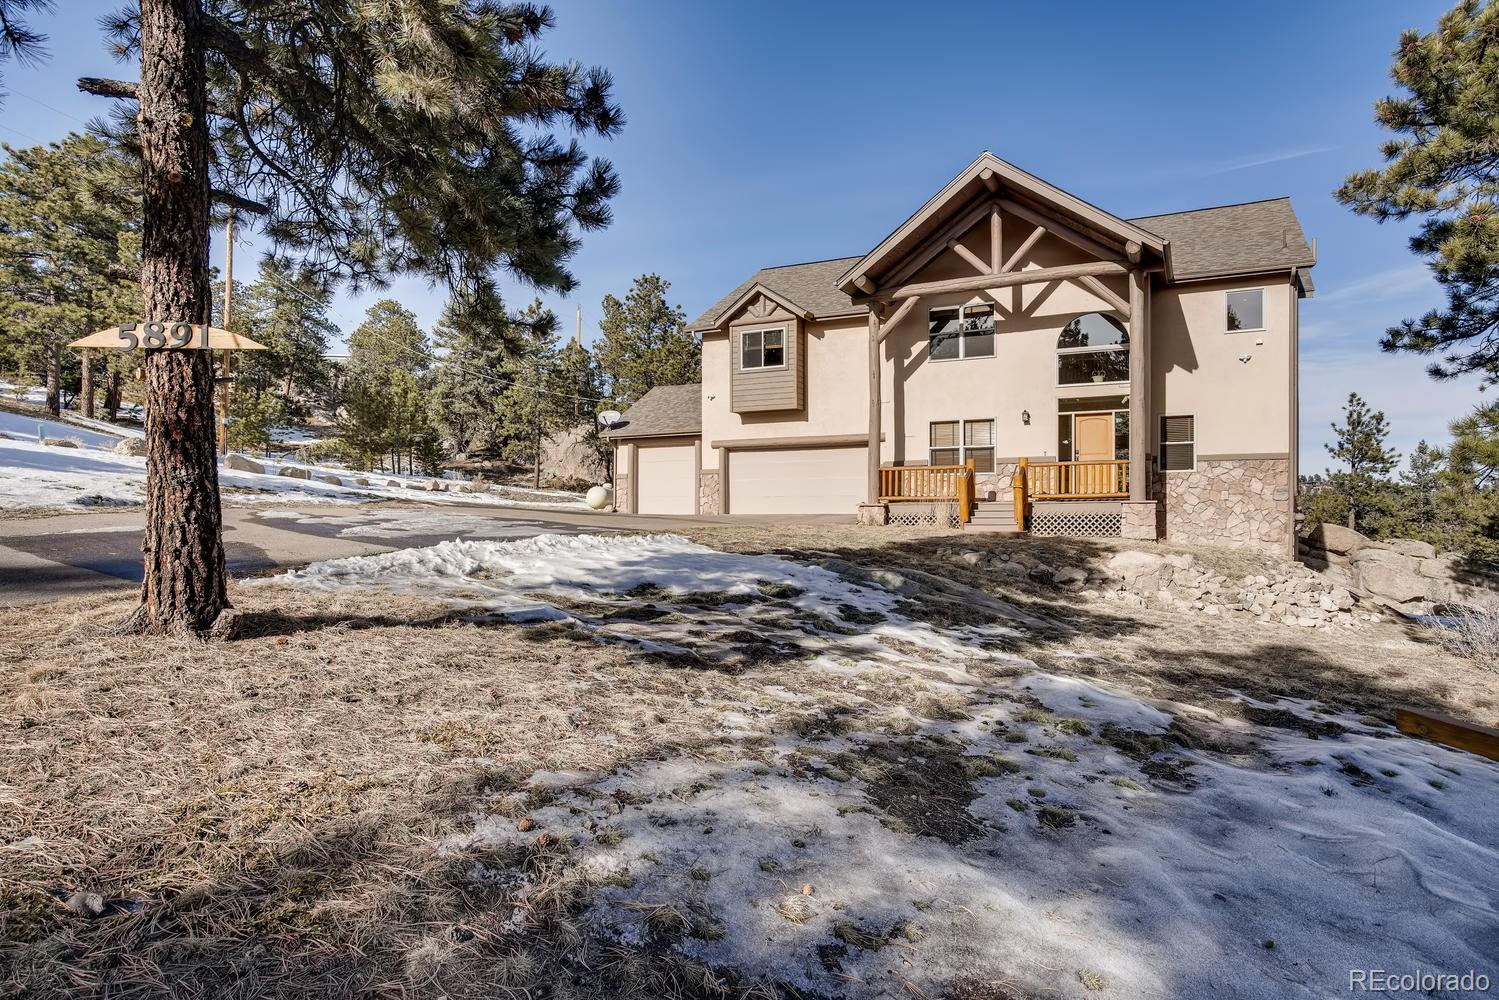 5891 Northwood Drive, Evergreen, CO 80439 - Evergreen, CO real estate listing